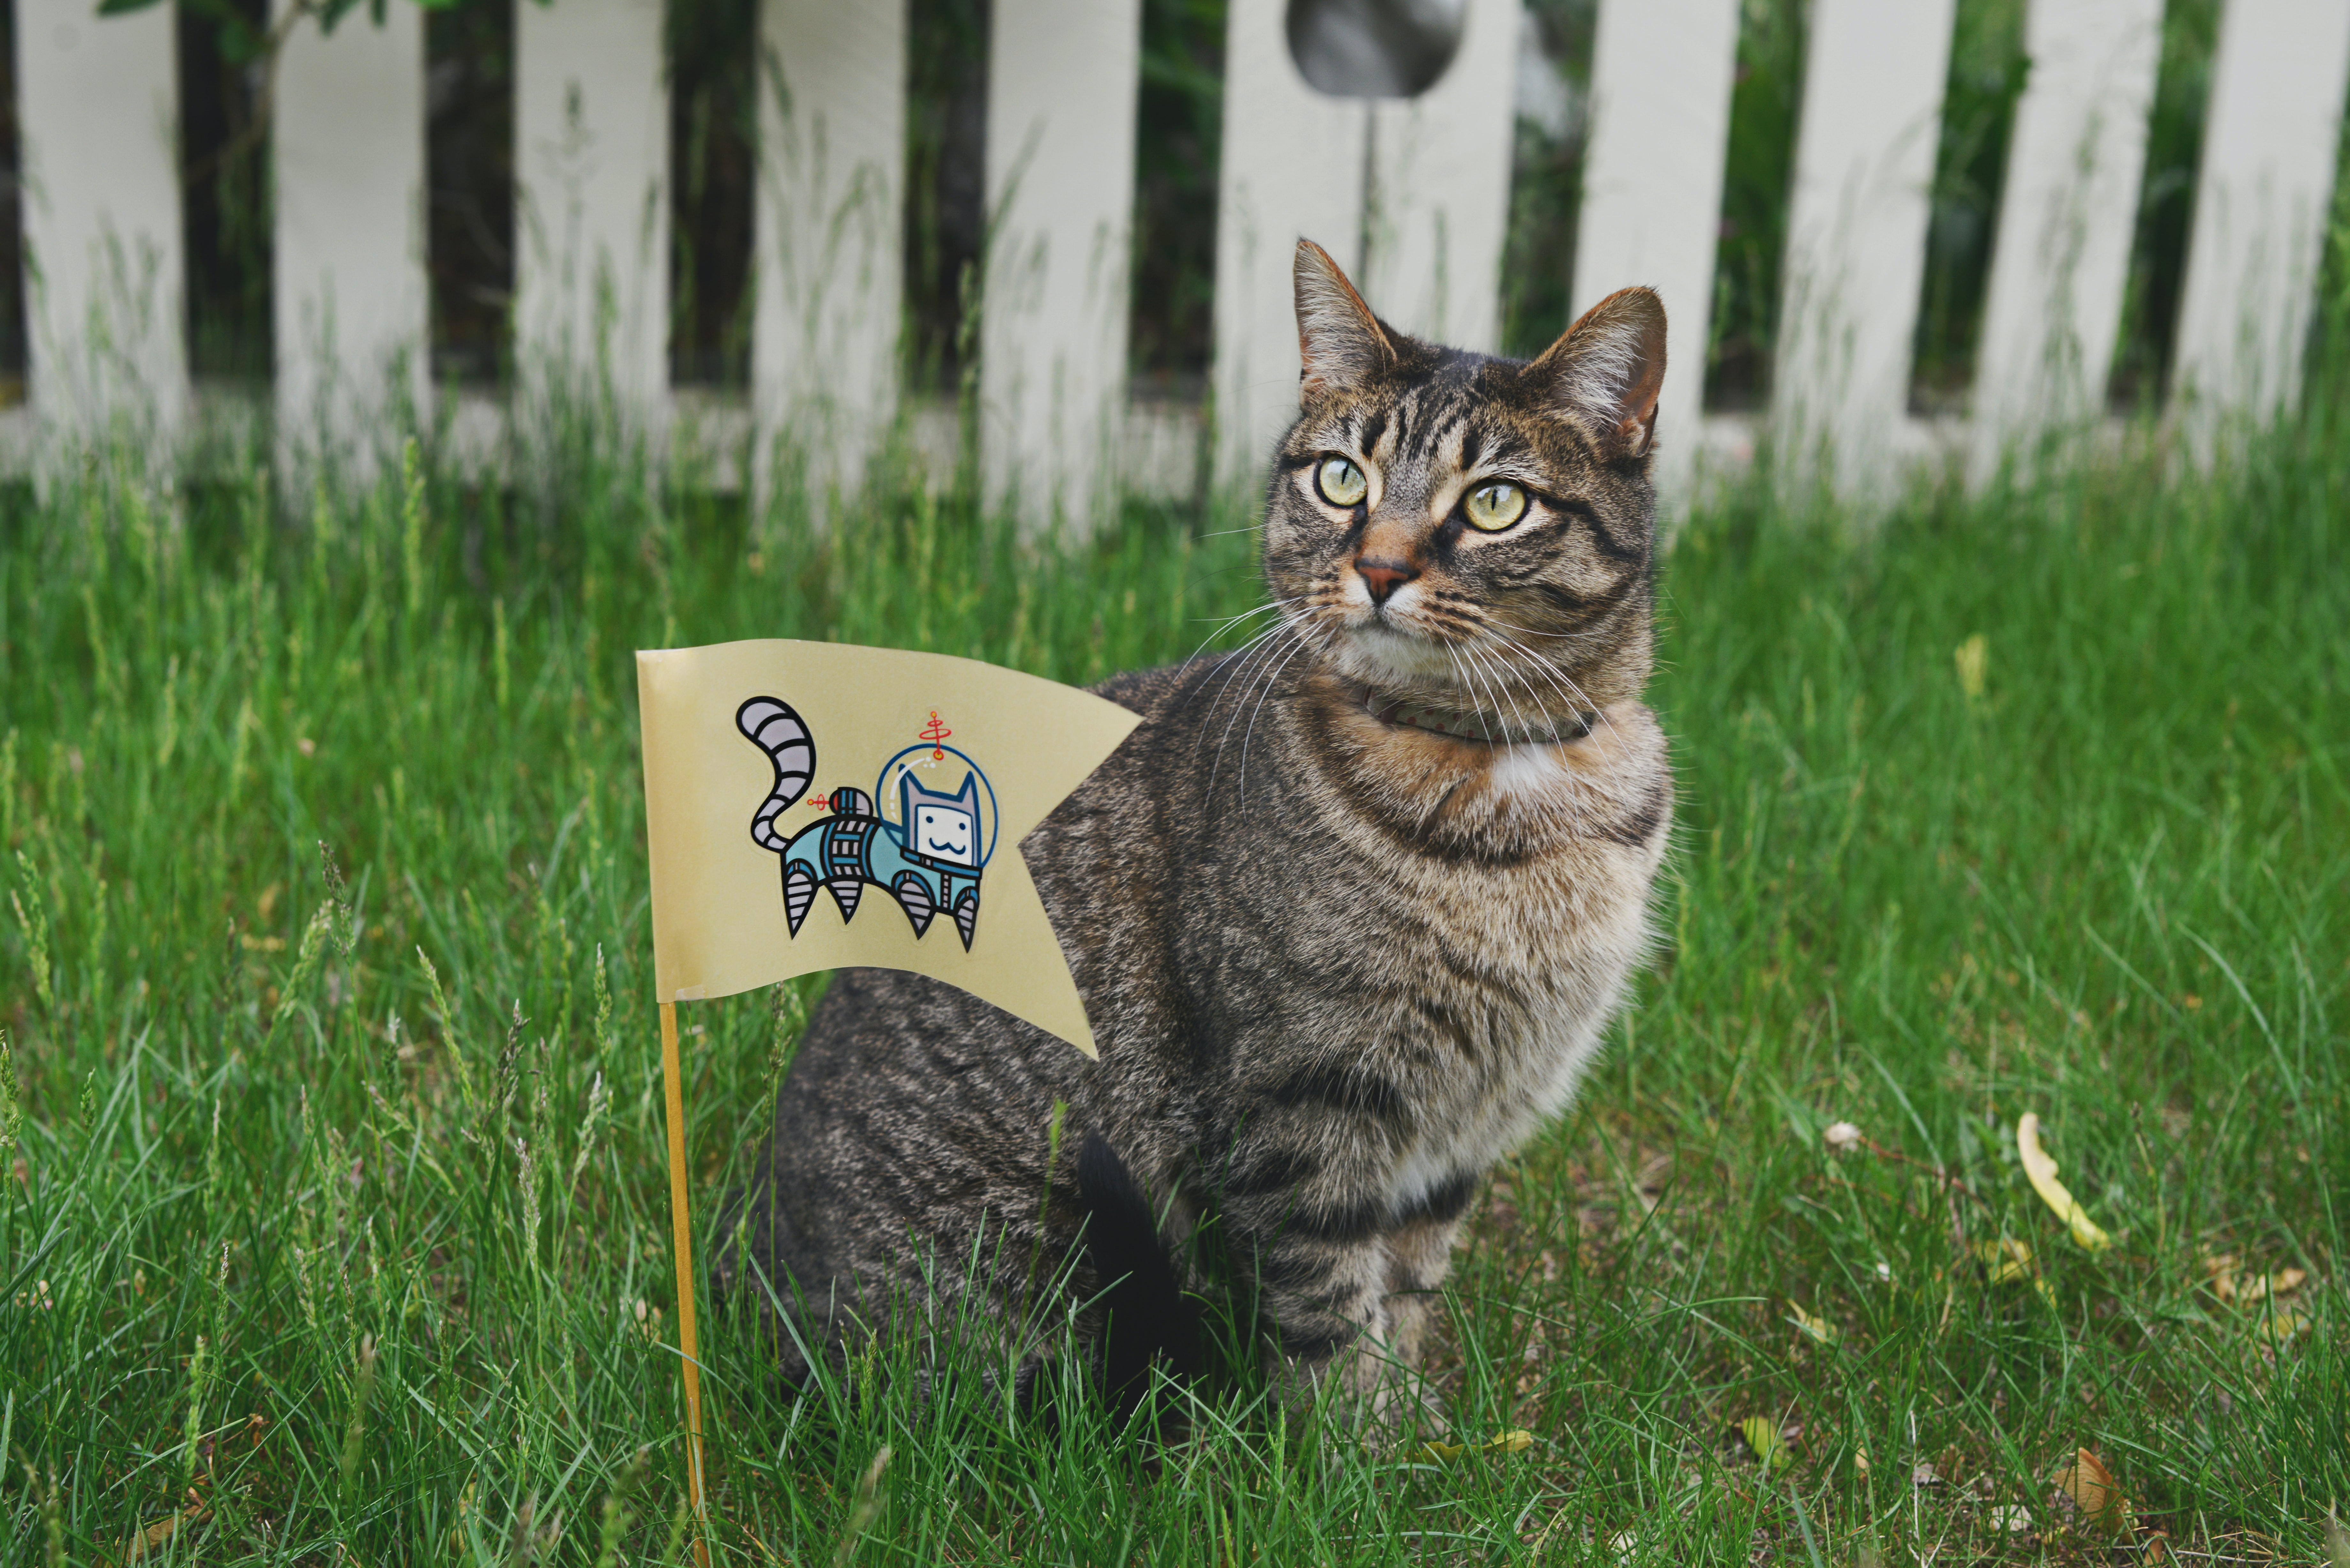 A tabby cat sitting next to a flag with a cartoon astronaut cat picture